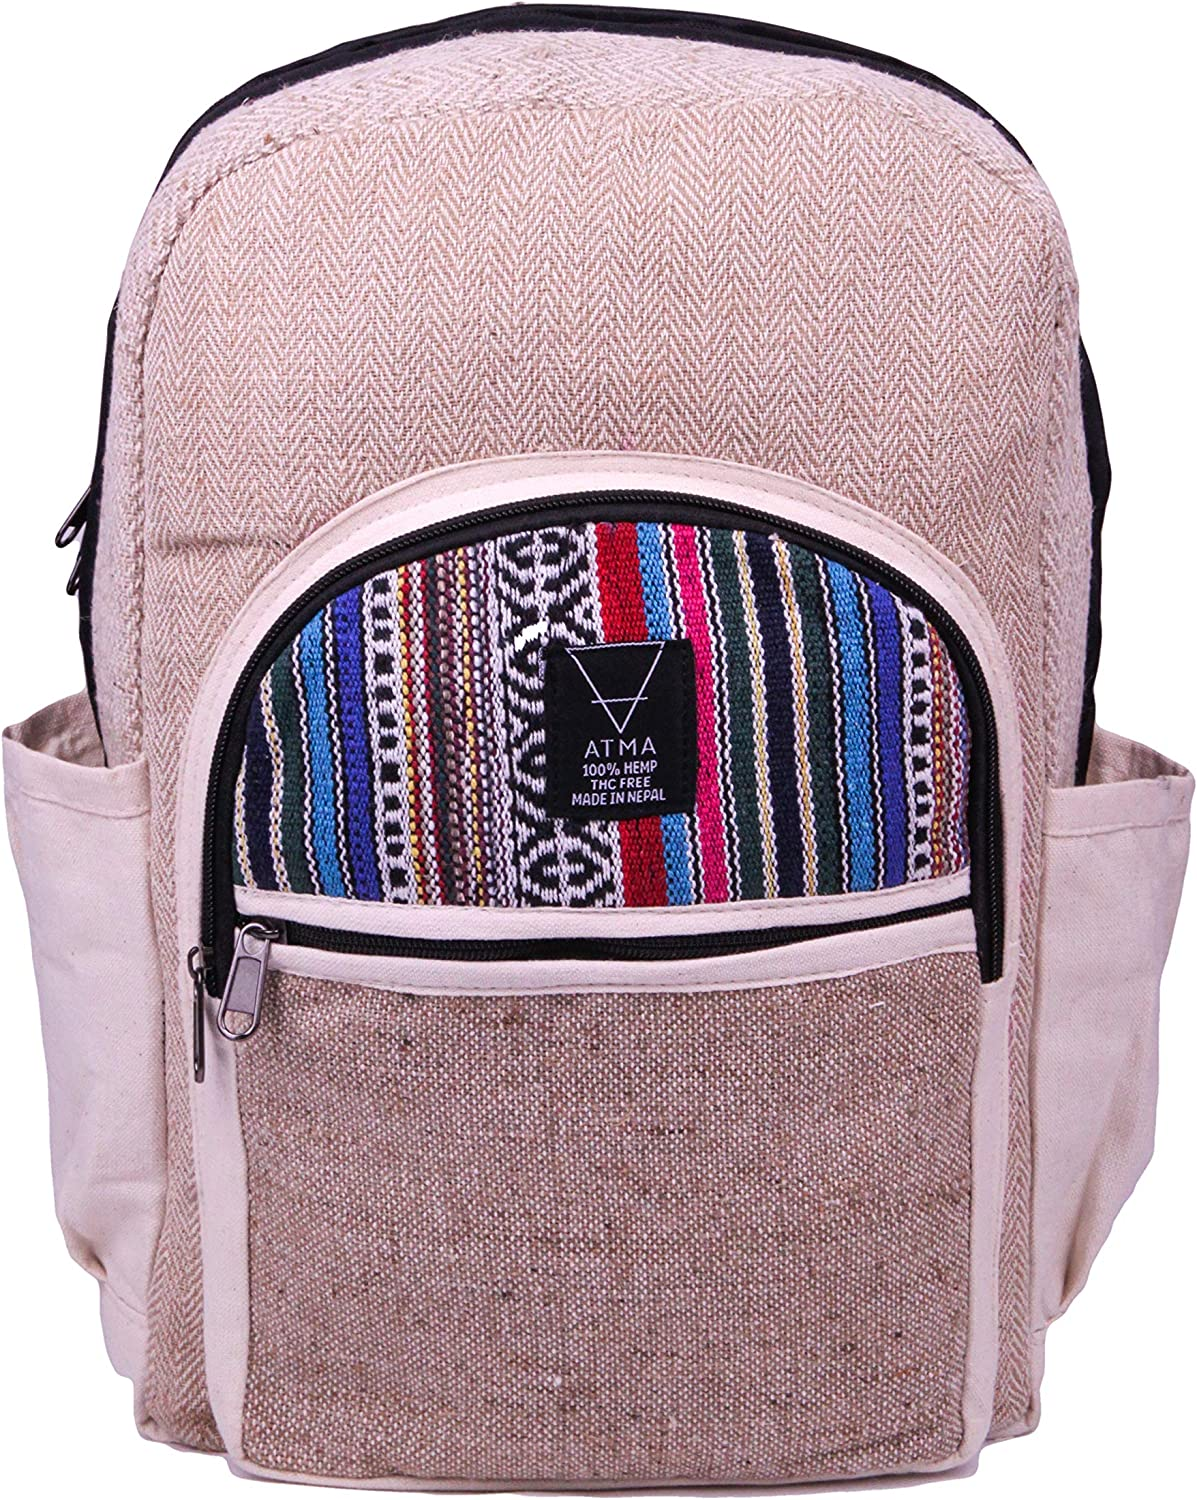 Handmade Organic Hemp Backpack - Sustainable Slow Fashion Line Line Line - A5041 B07H8SD1RW  Schön und charmant ca3bd0